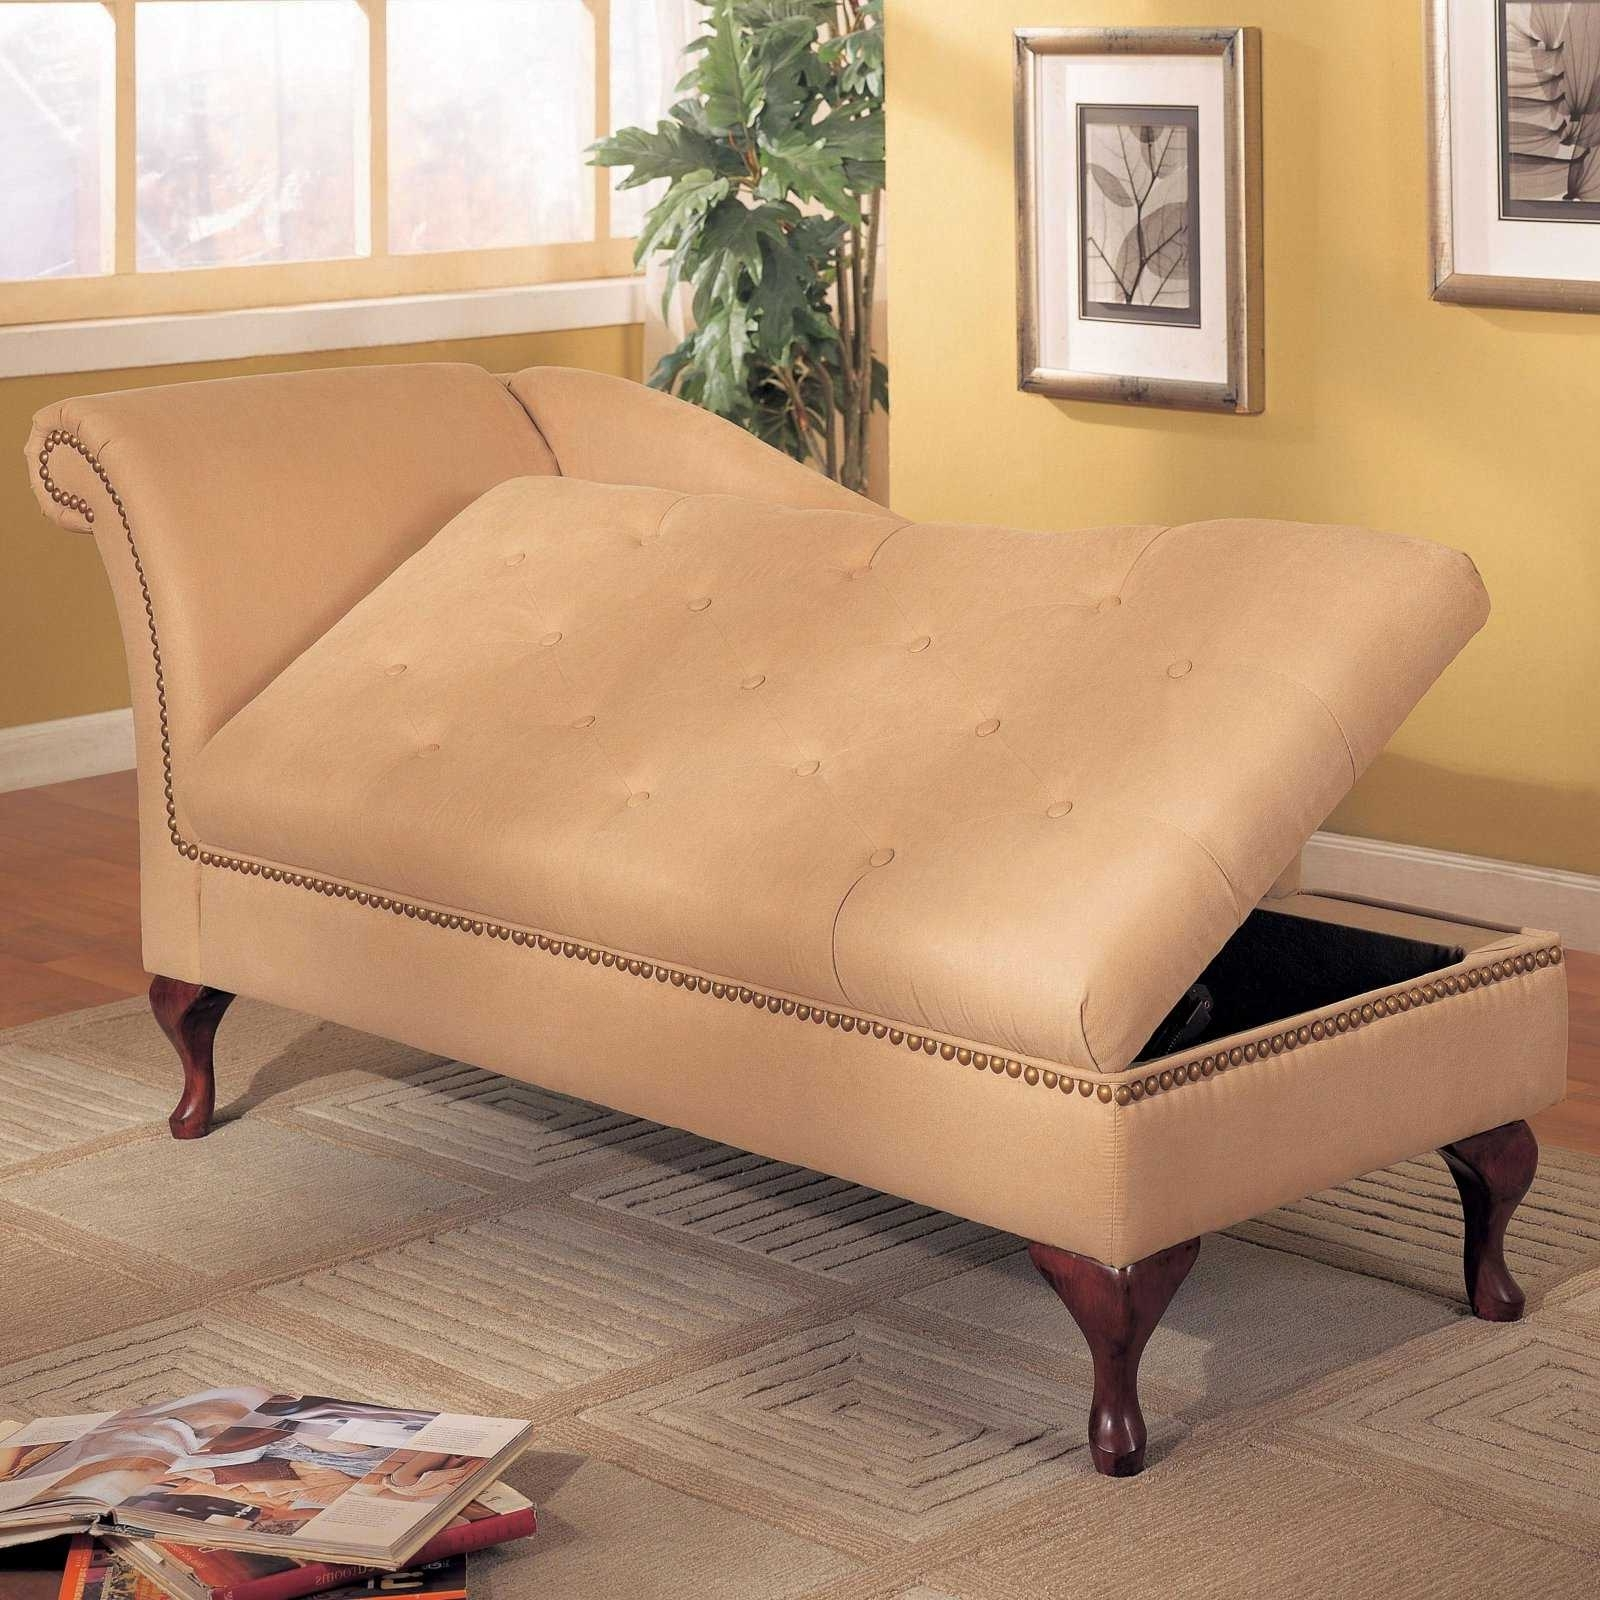 Best And Newest Leather Sofas With Chaise Lounge Within Lounge Chair : Outdoor White Leather Chaise Lounge Indoor Chaise (View 13 of 15)